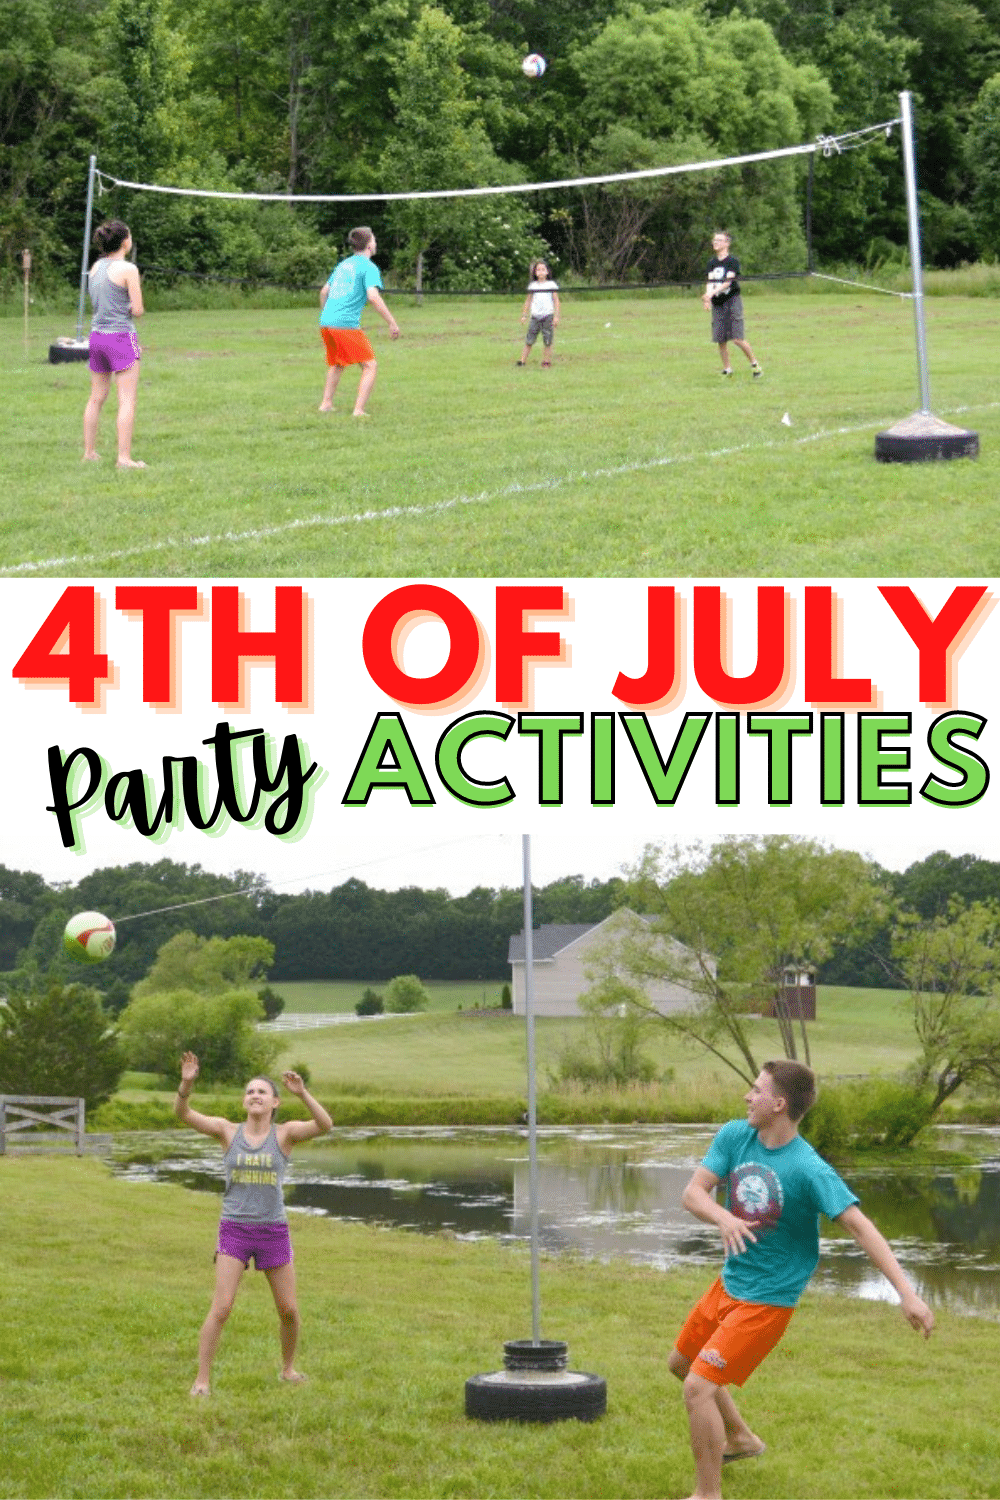 If you plan on celebrating Independence Day at home, check out this list of things to remember including recommended 4th of July party activities. #independenceday #4thofJuly #partyactivities #4thofJulyparty via @wondermomwannab